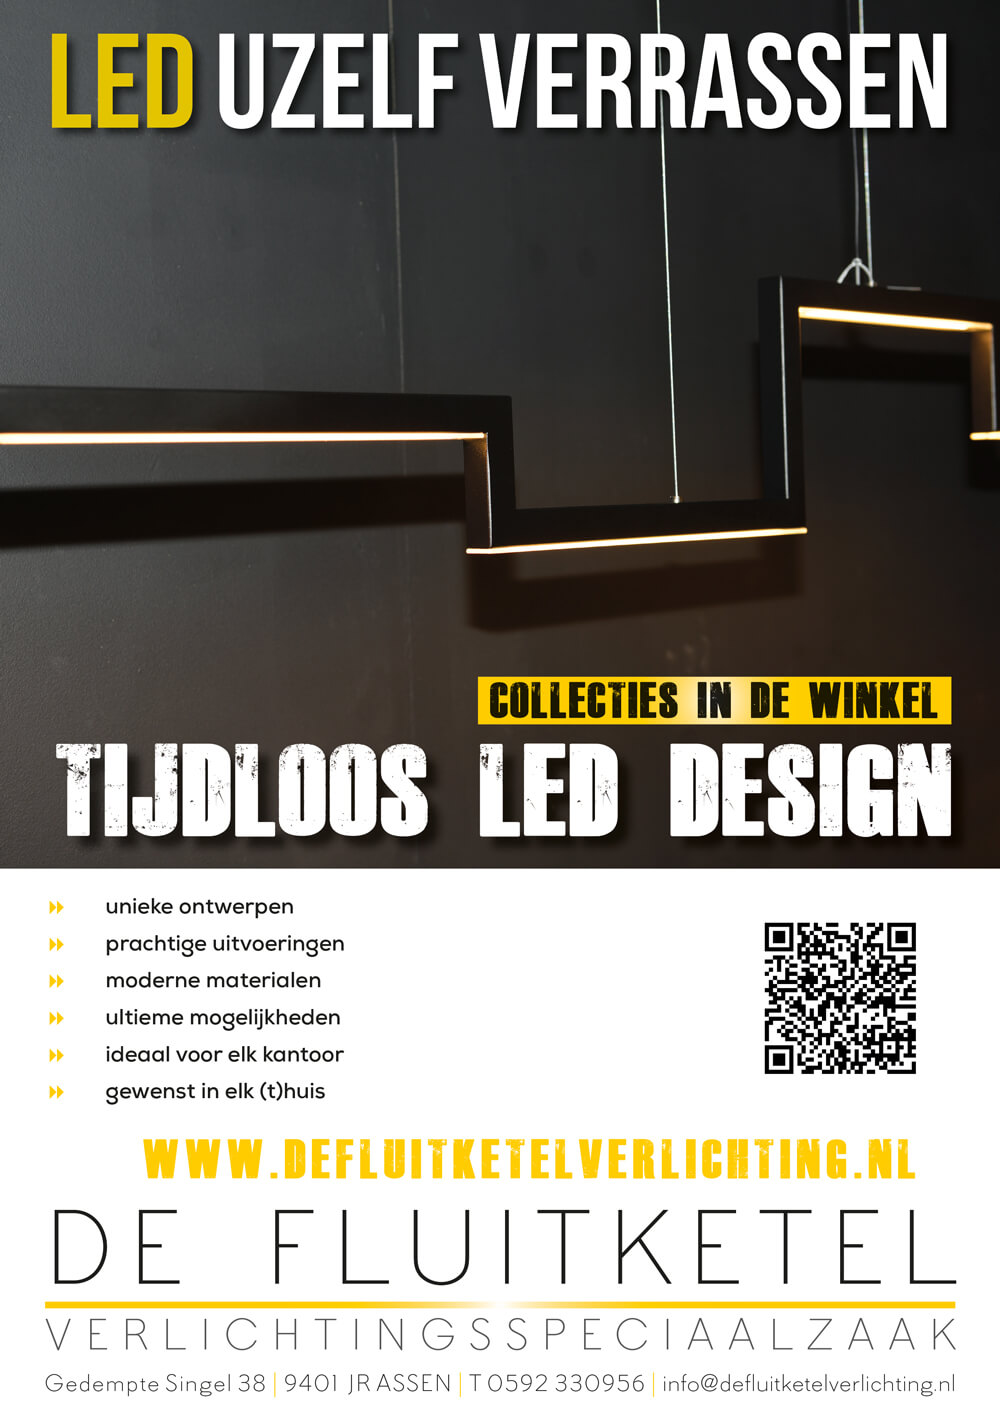 DFK LED Design